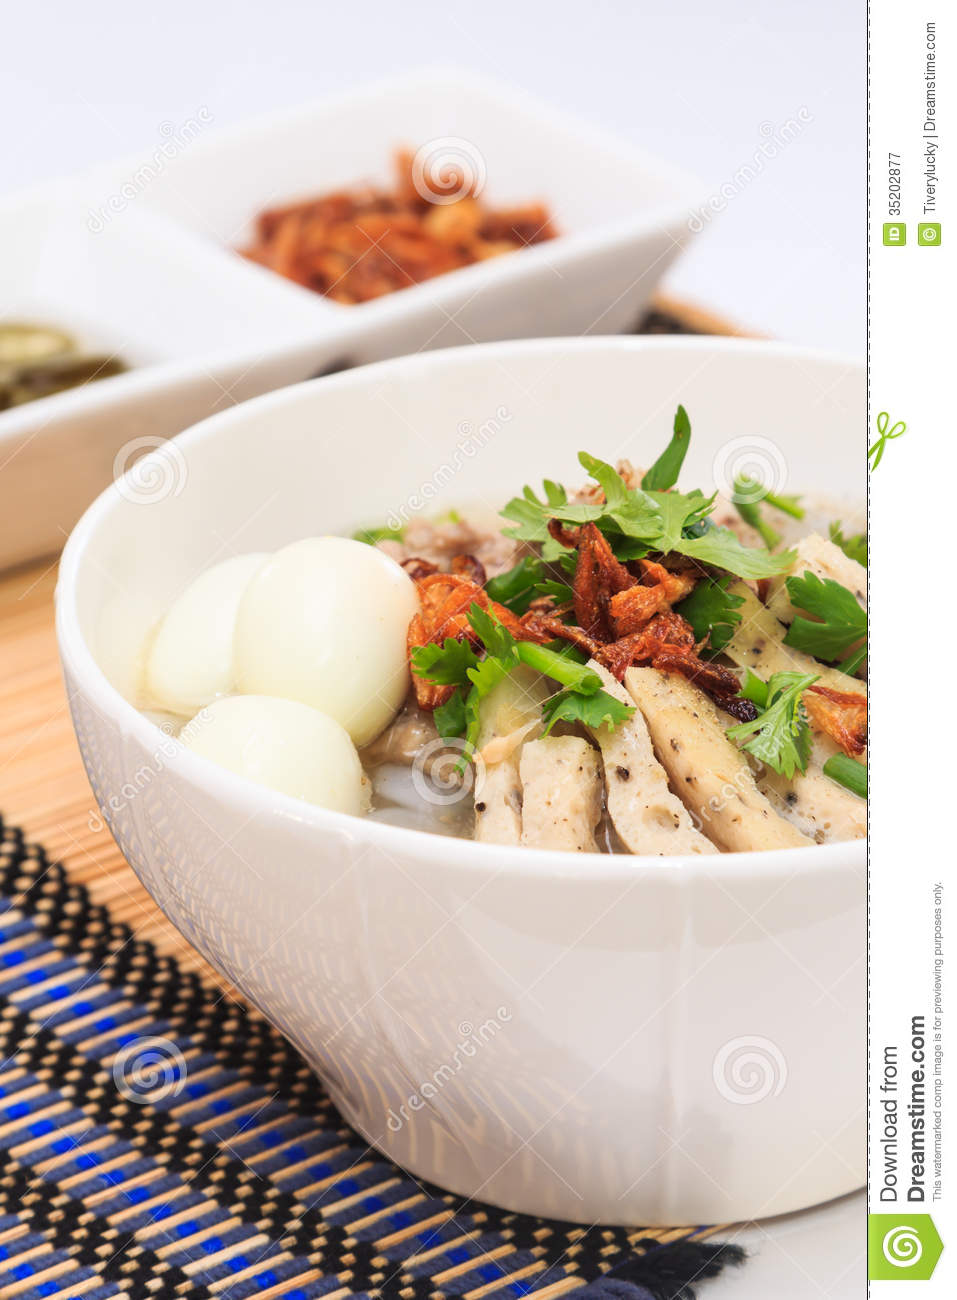 Vietnamese Food Royalty Free Stock Photography   Image  35202877